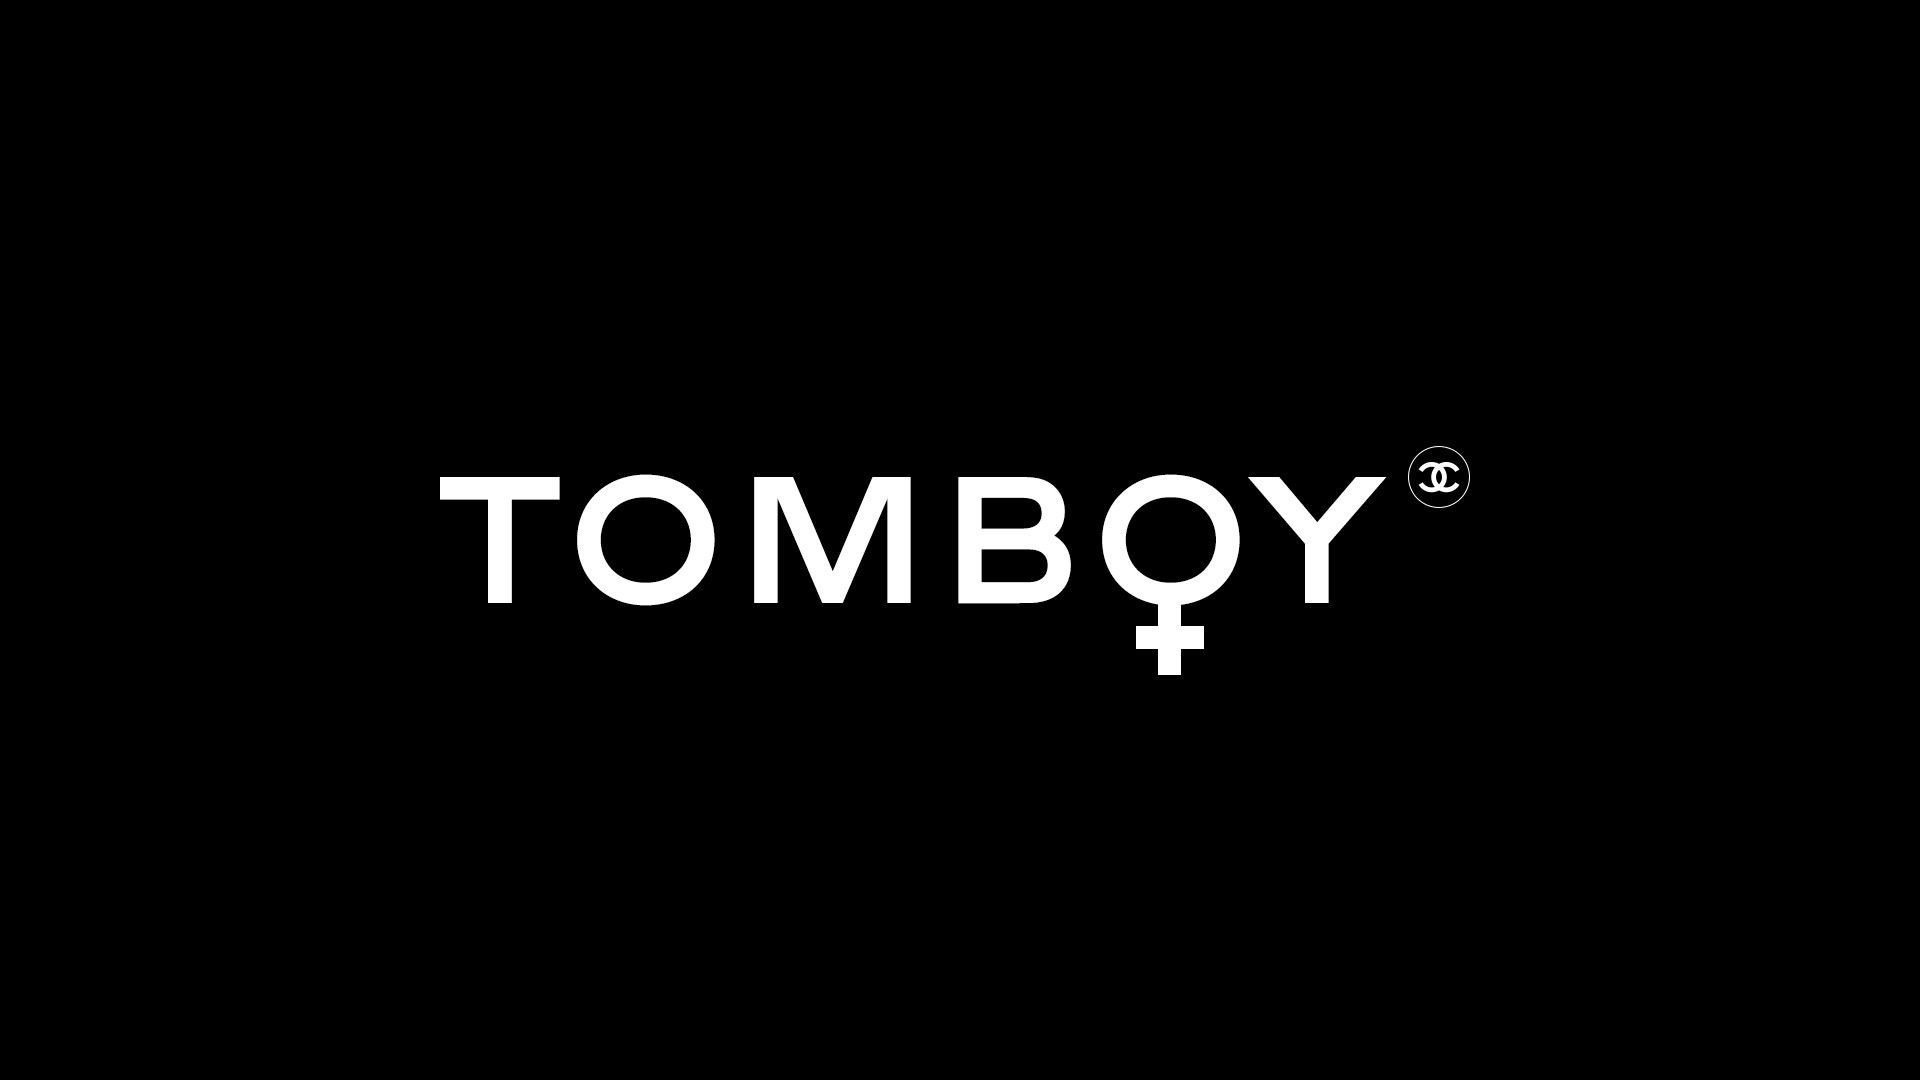 Tomboy Picture designs – Tattoo of tomboys